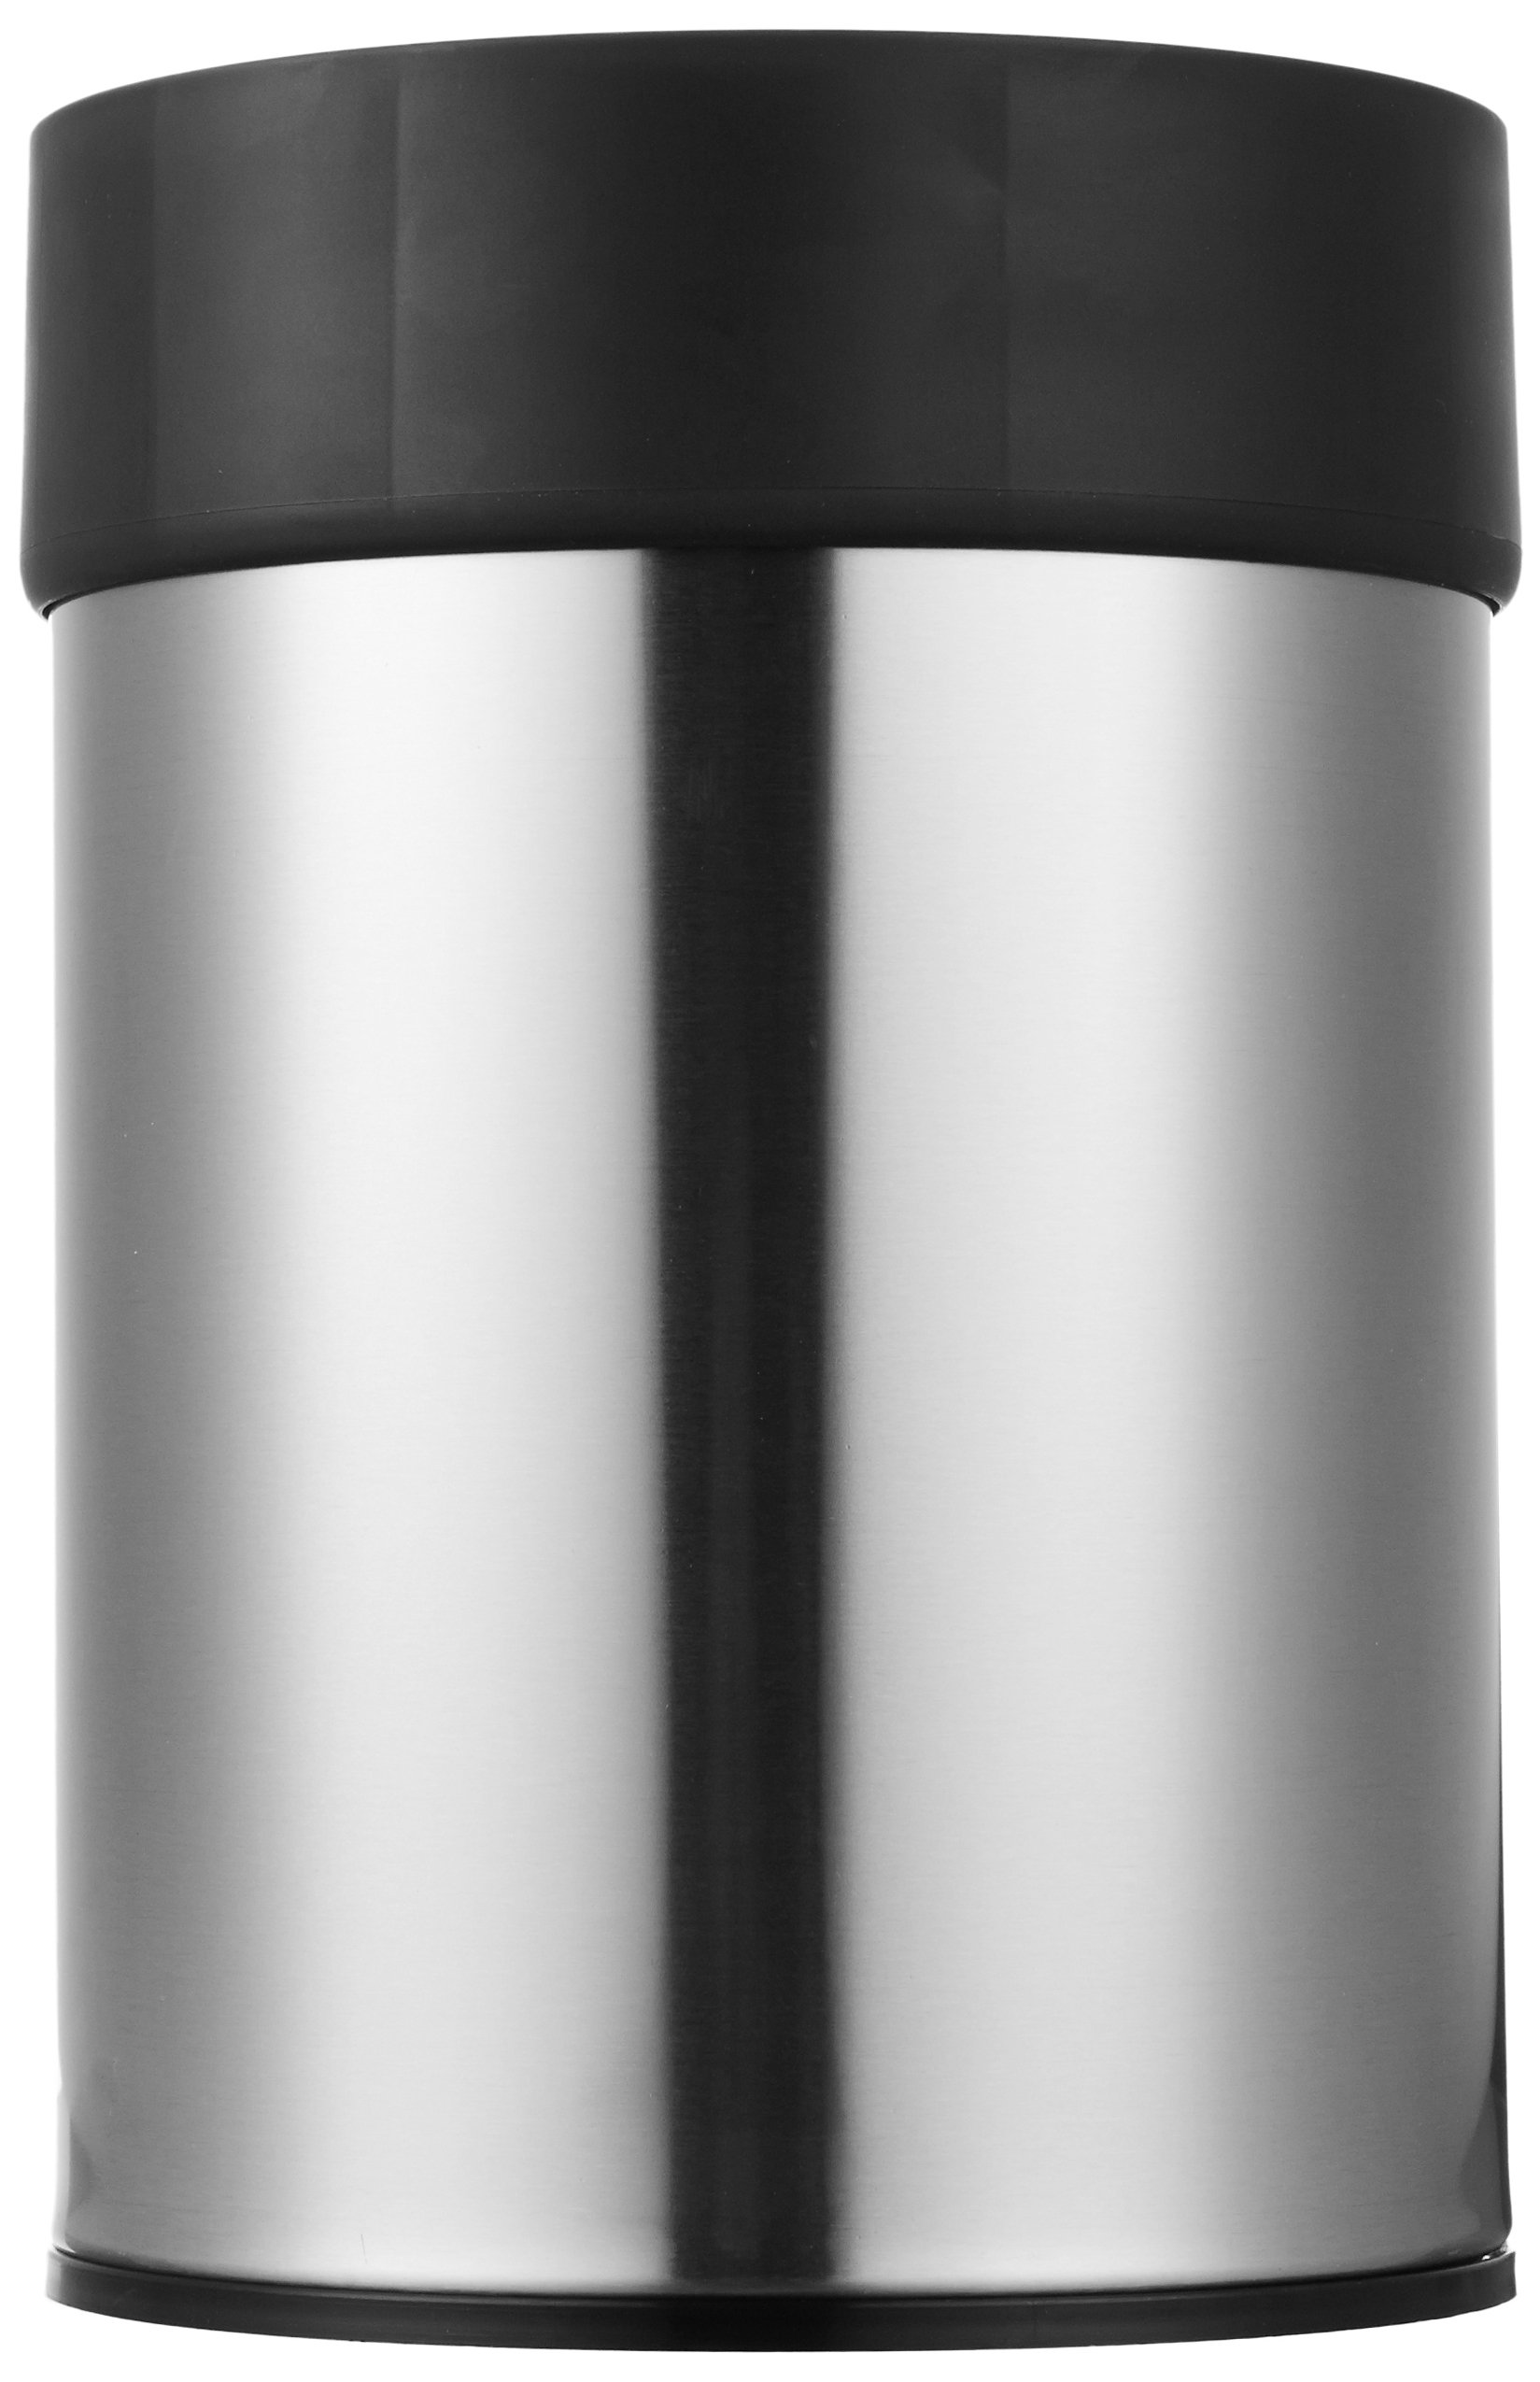 AmazonBasics Stainless Steel Waste Can - Black by AmazonBasics